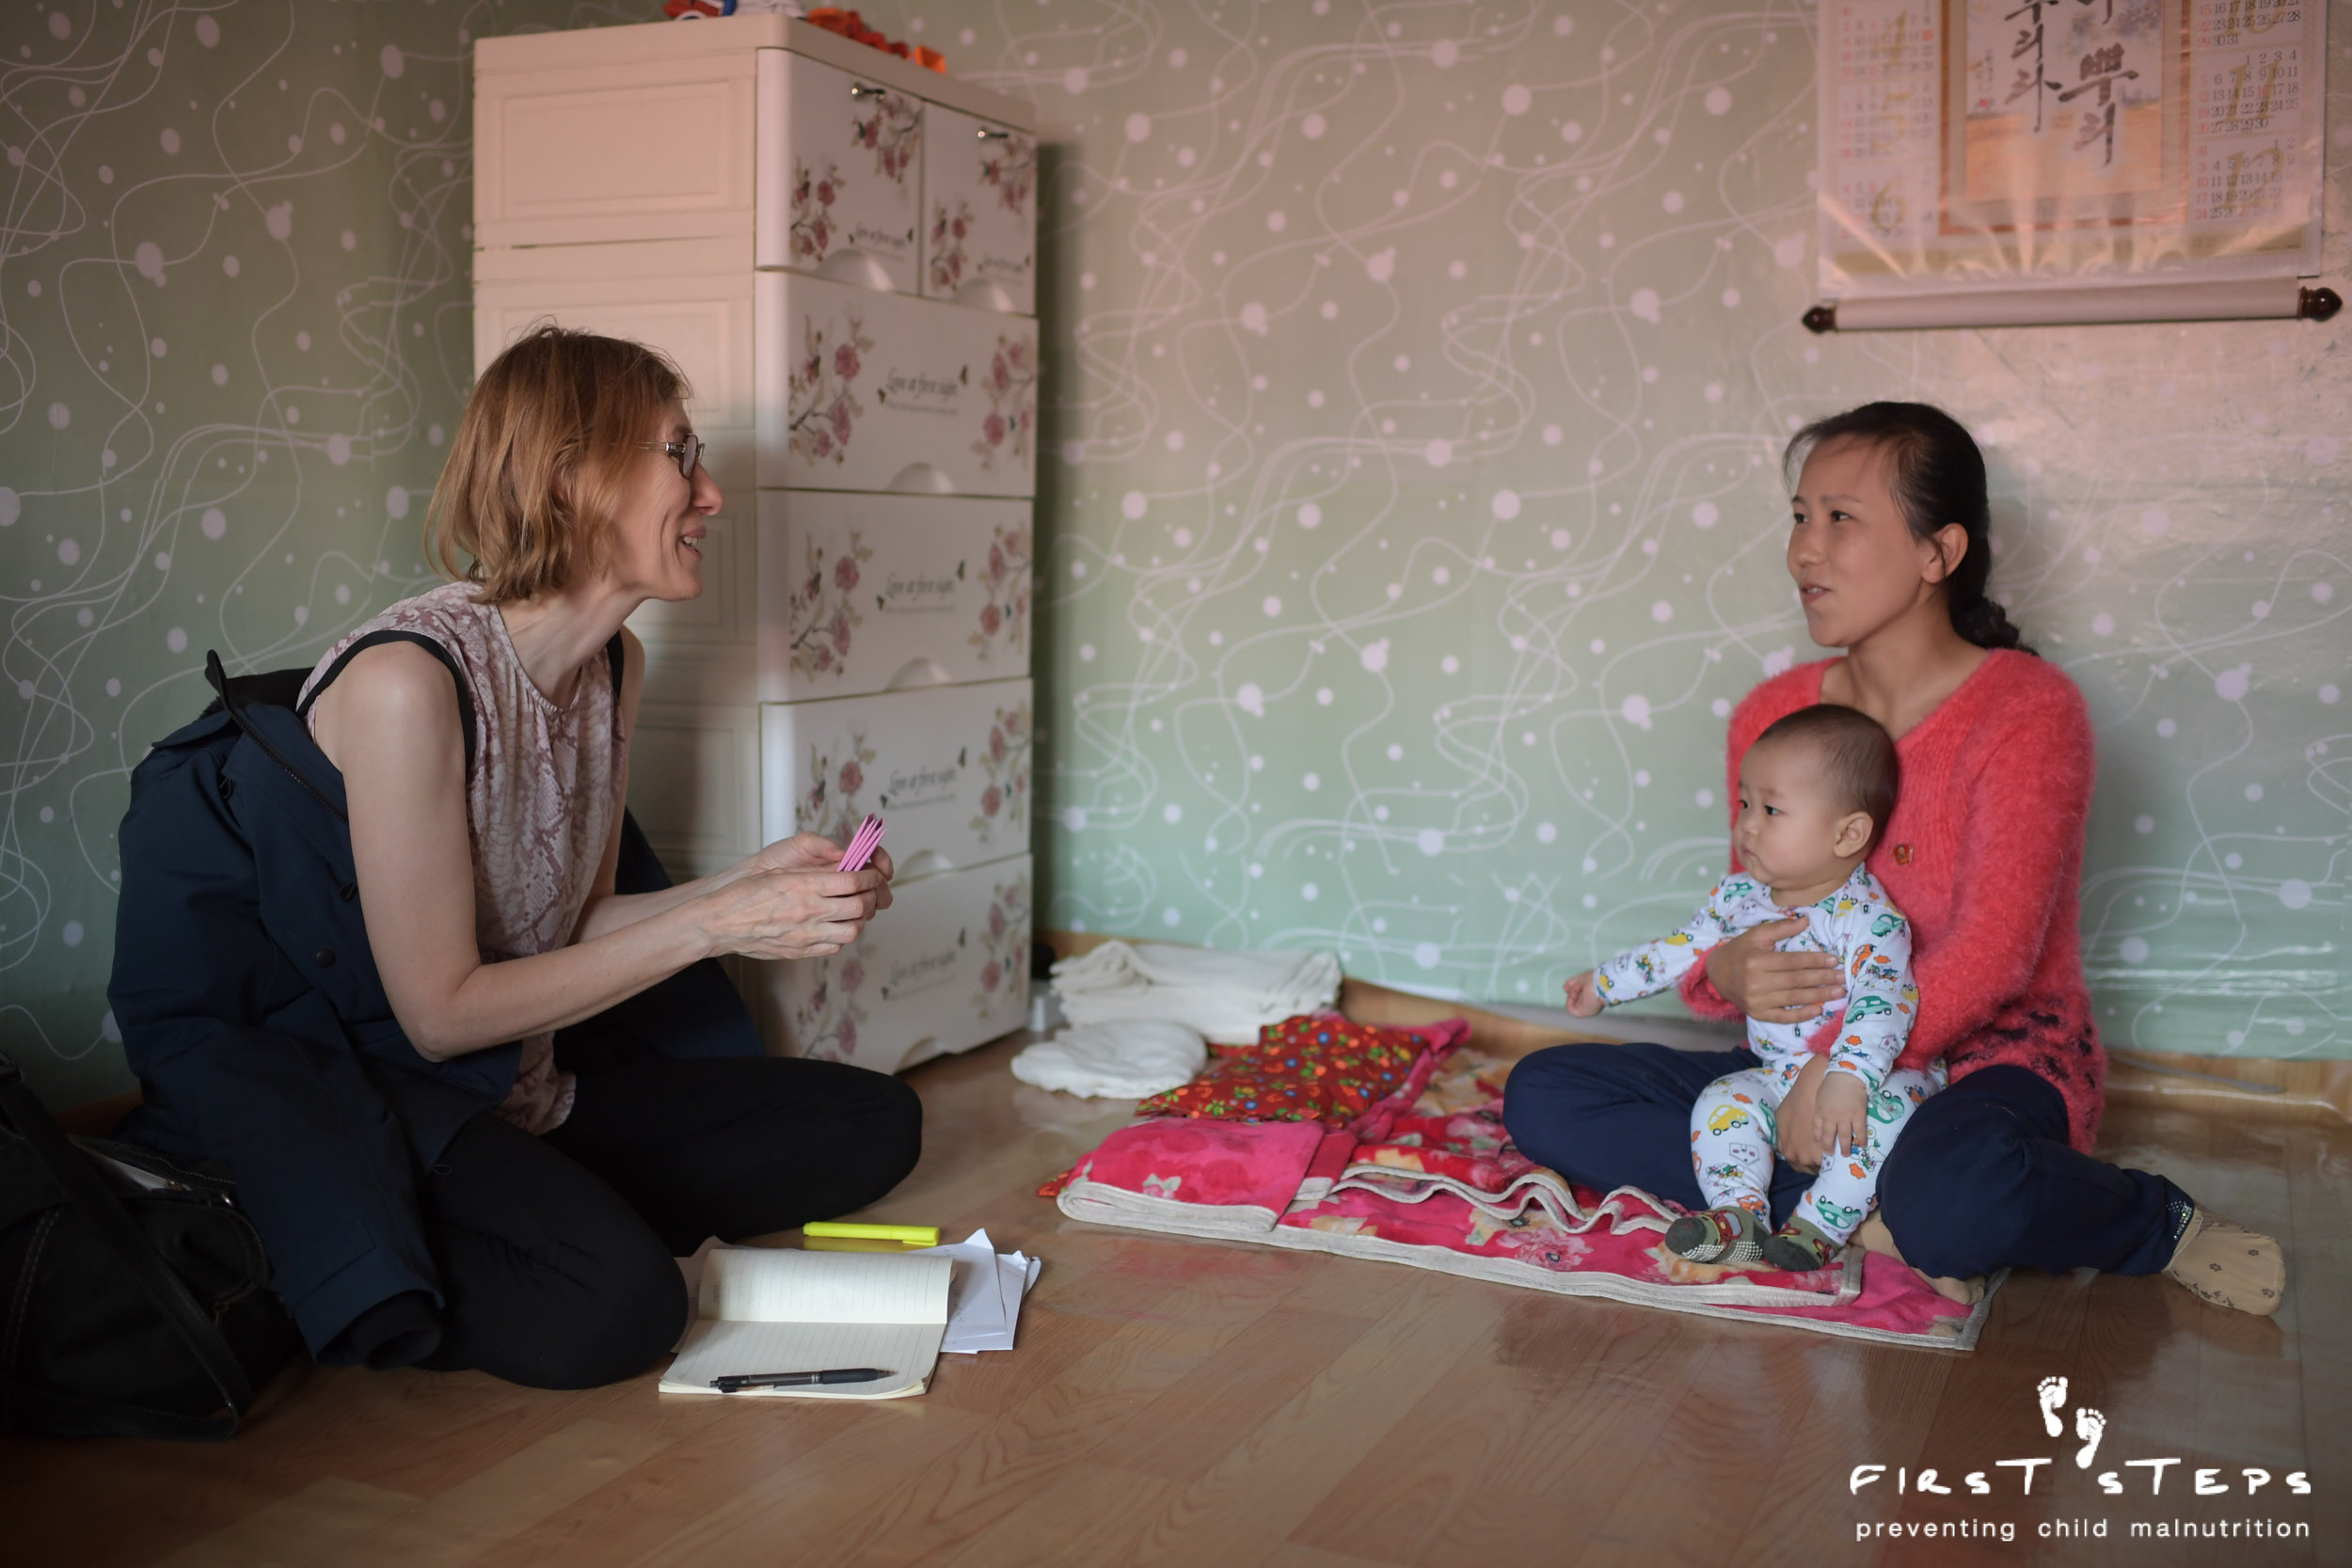 Susan Ritchie, First Steps' executive director, visits the home of Sprinkles recipient Mun Kum-Hae and her six-month-old son Kim Whi-Bok.